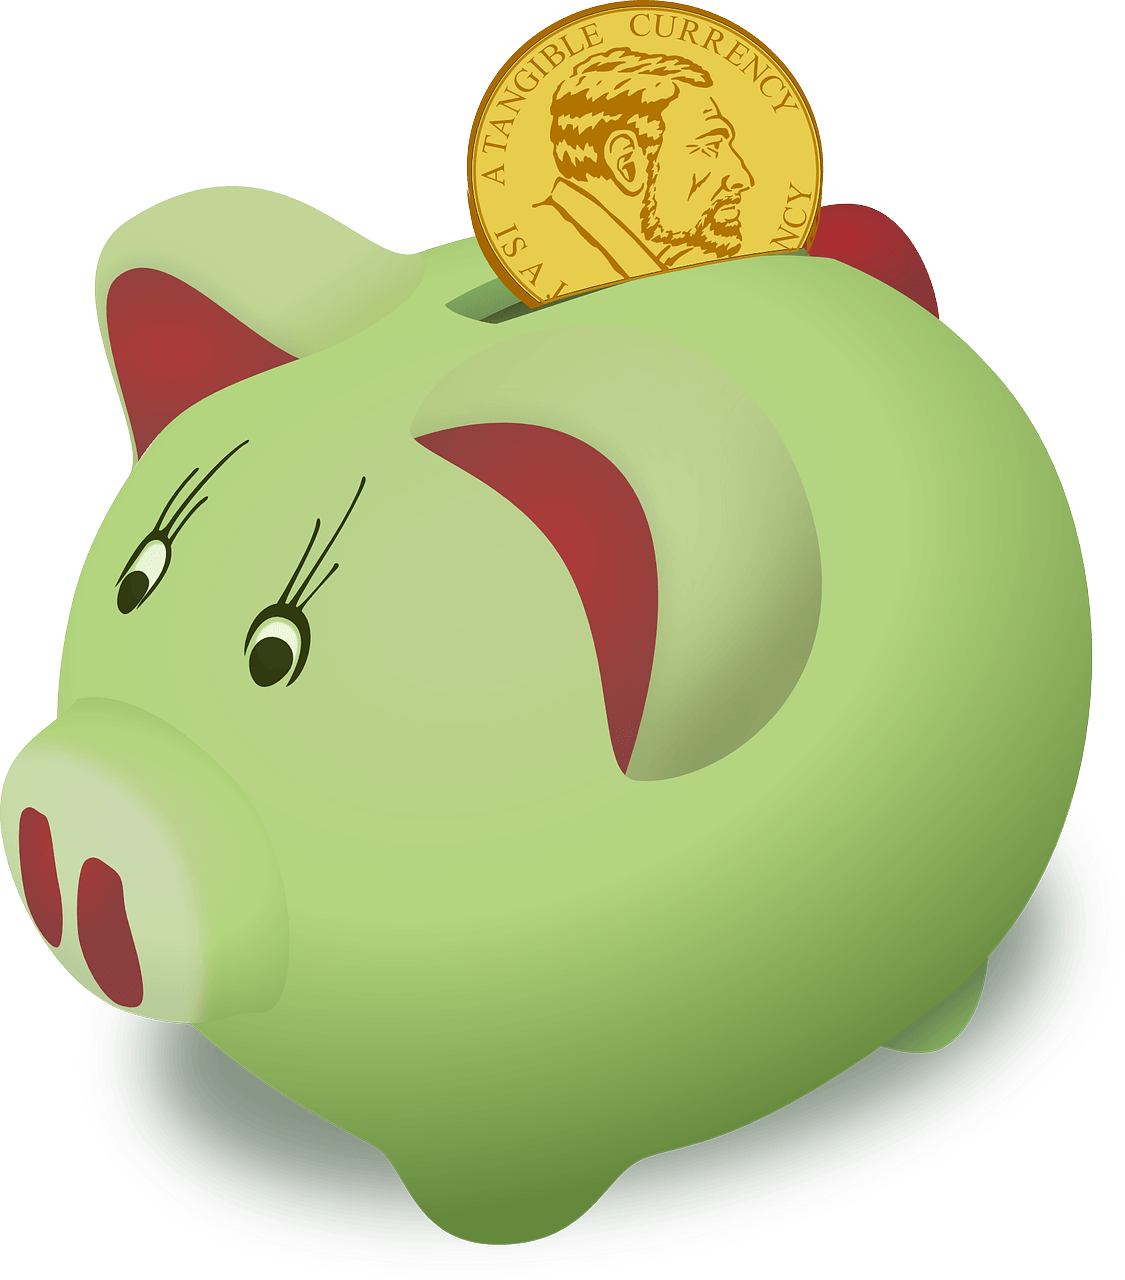 Money vs happiness clipart black and white download Money vs. Happiness: Which Is Important to You? - Professional ... black and white download